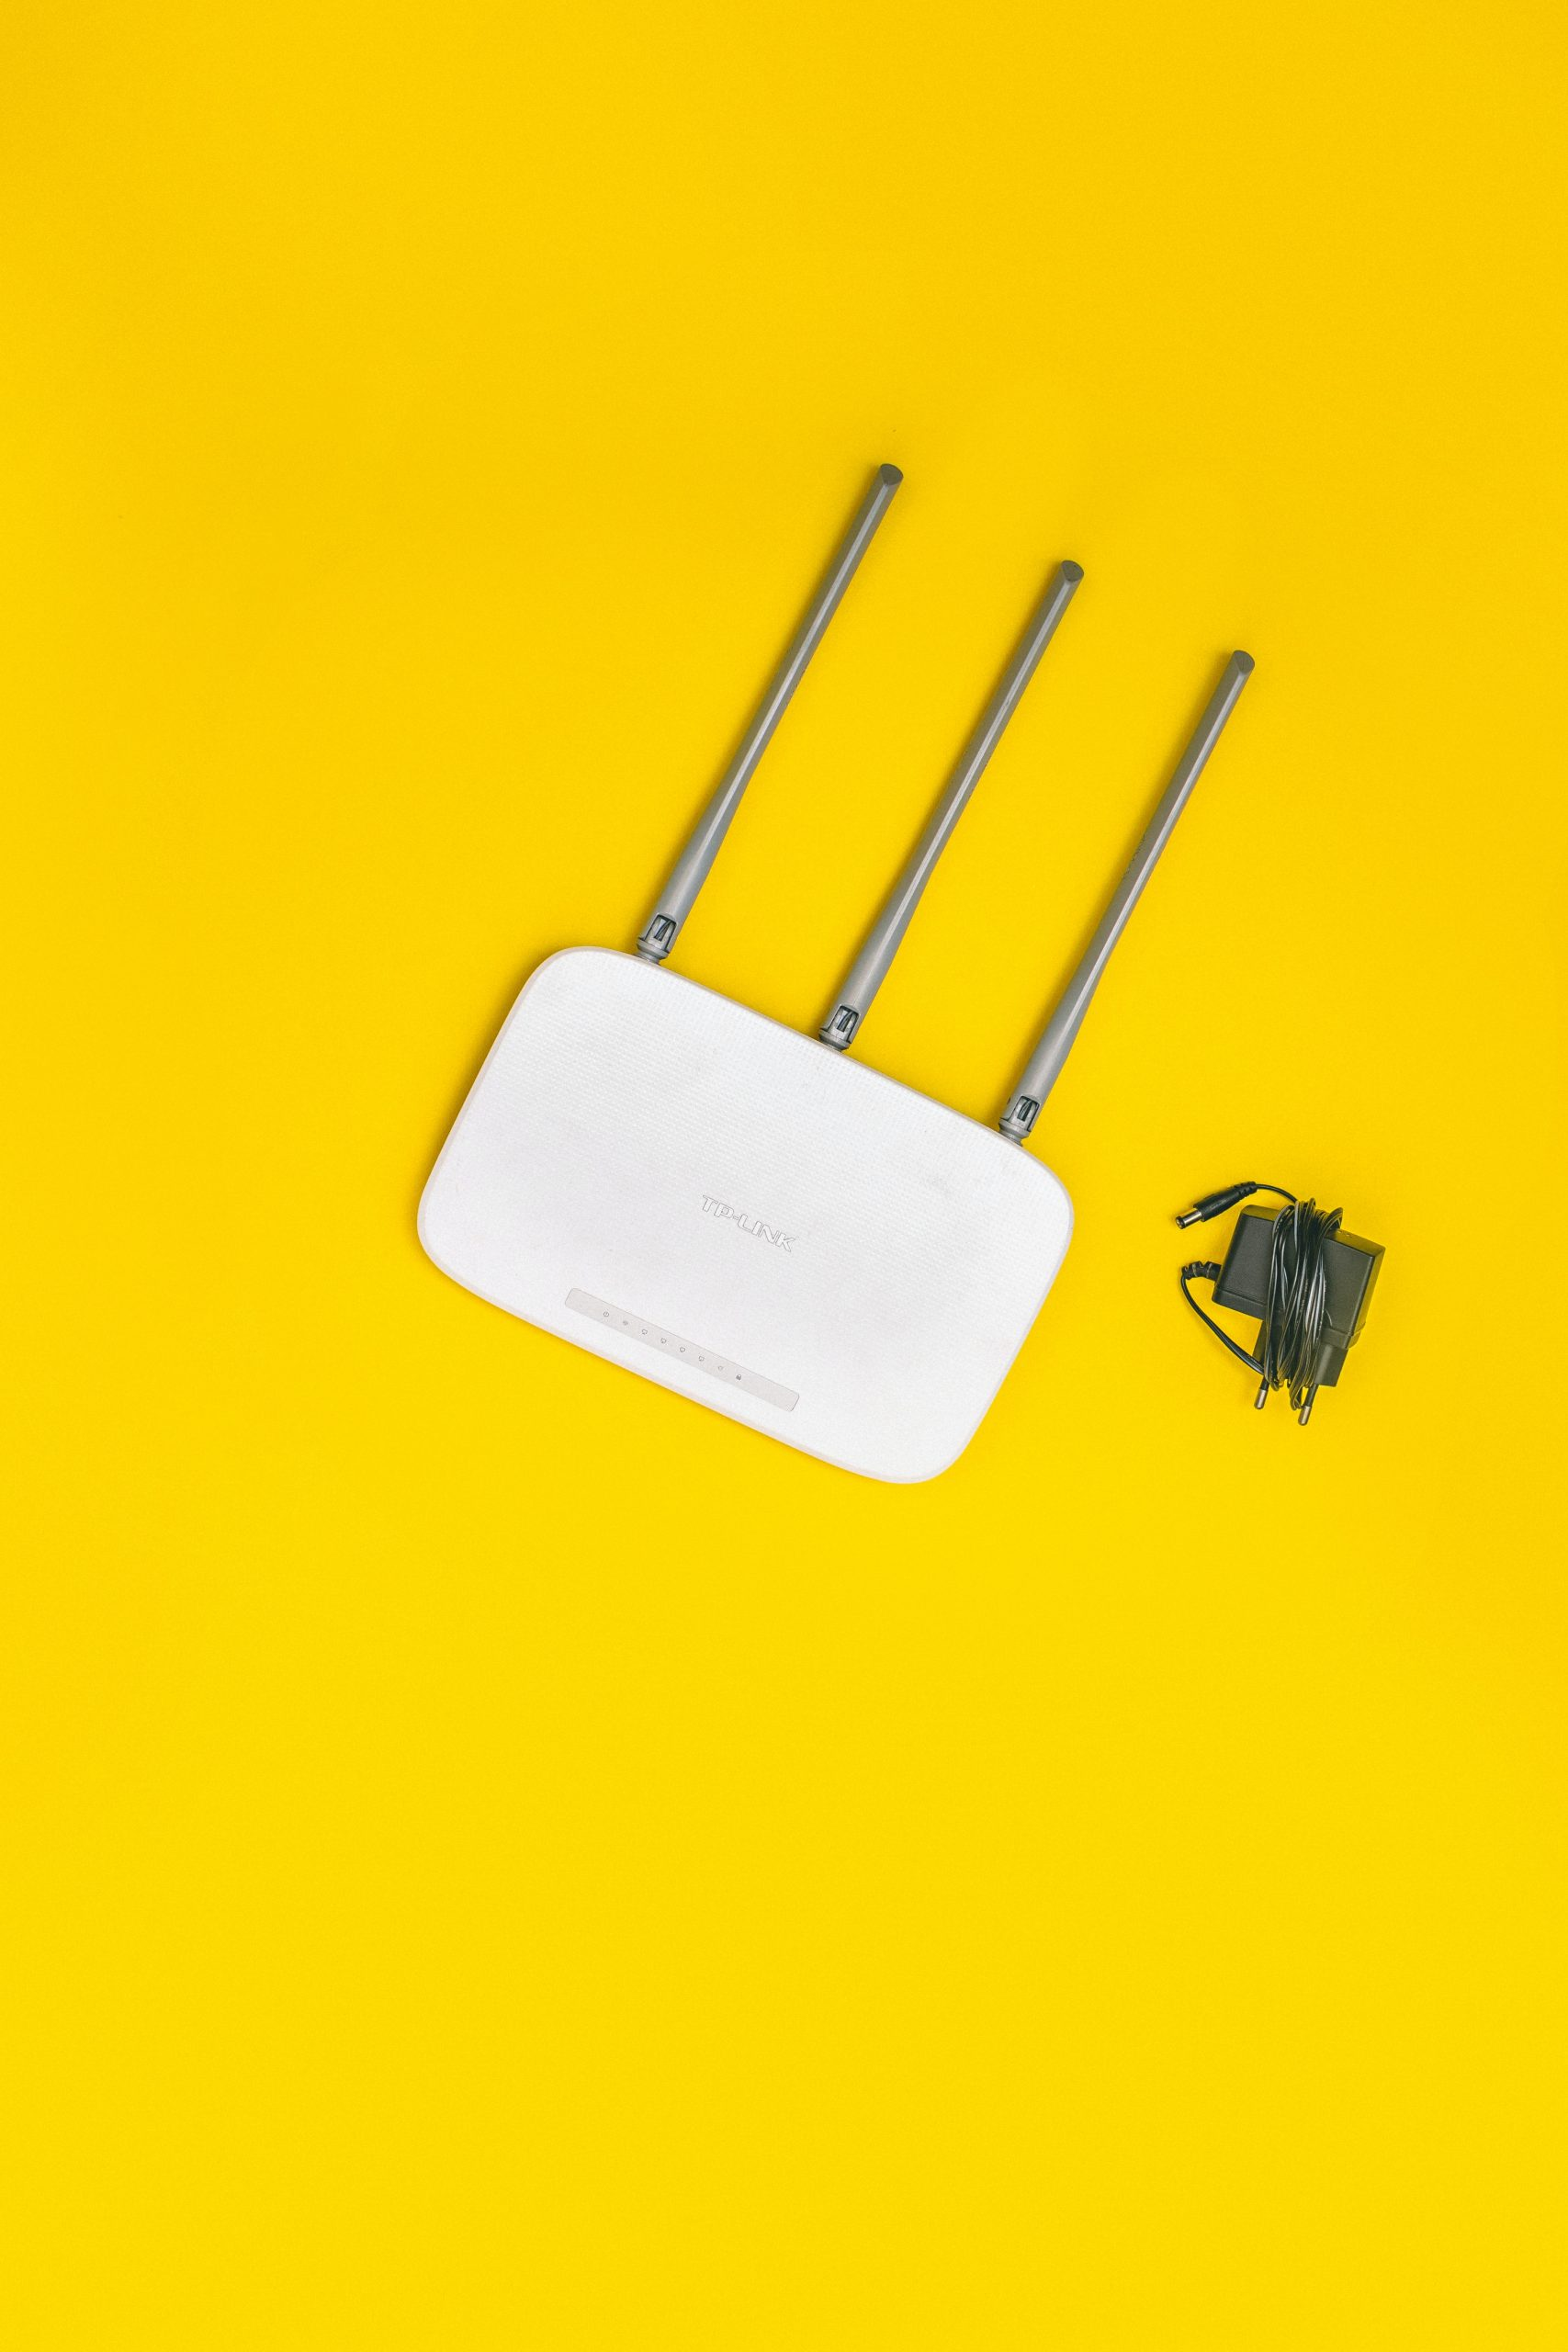 Top 4 Threats to Your Business Wi-Fi and How You Can Reduce Your Risk